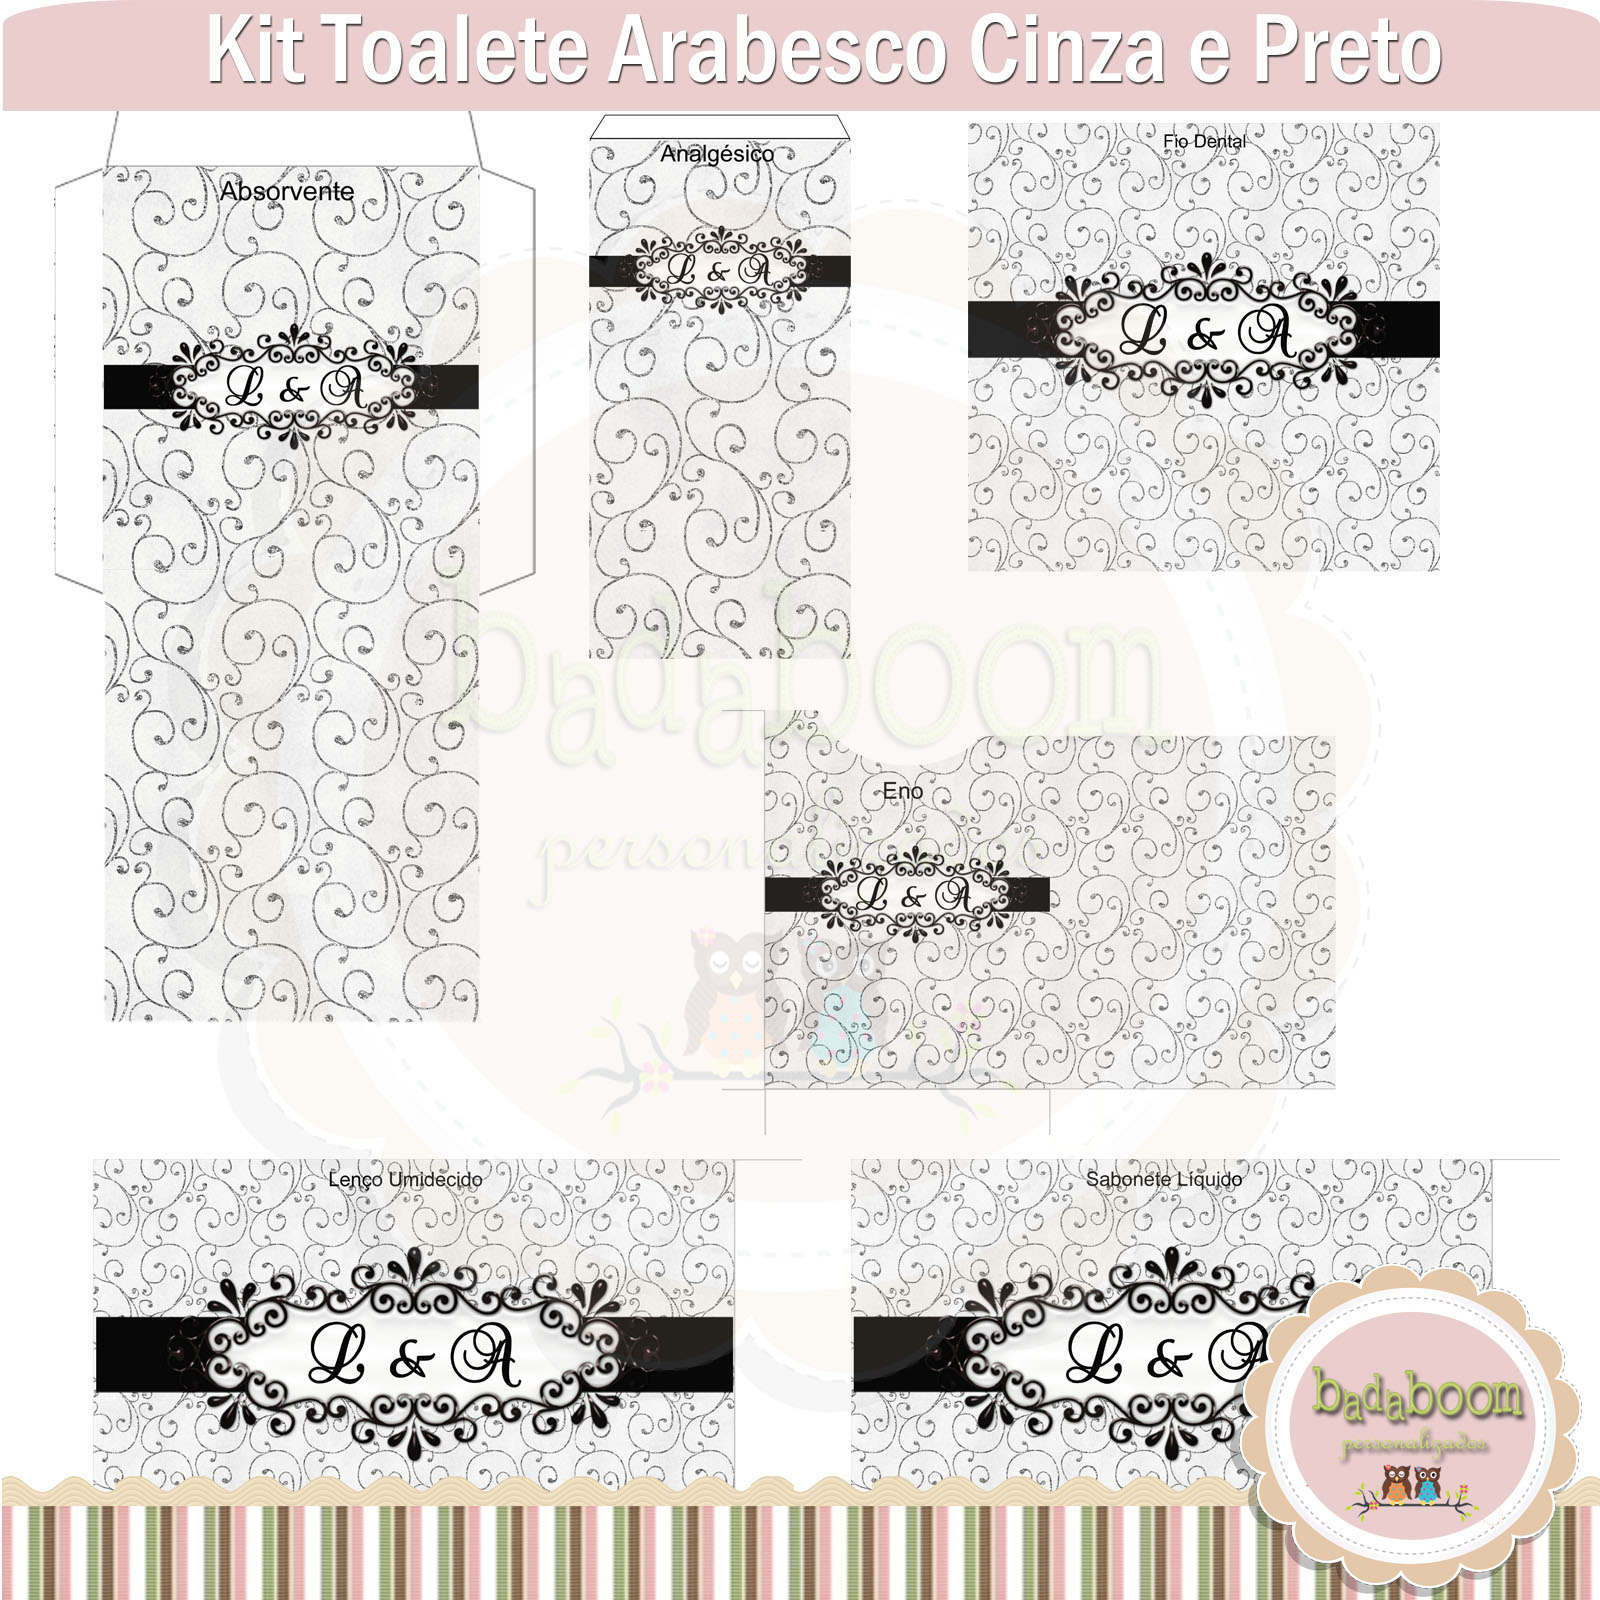 Kit Toalete Rosa E Preto Pictures to pin on Pinterest #208CAB 1600x1600 Banheiro Cinza Com Preto